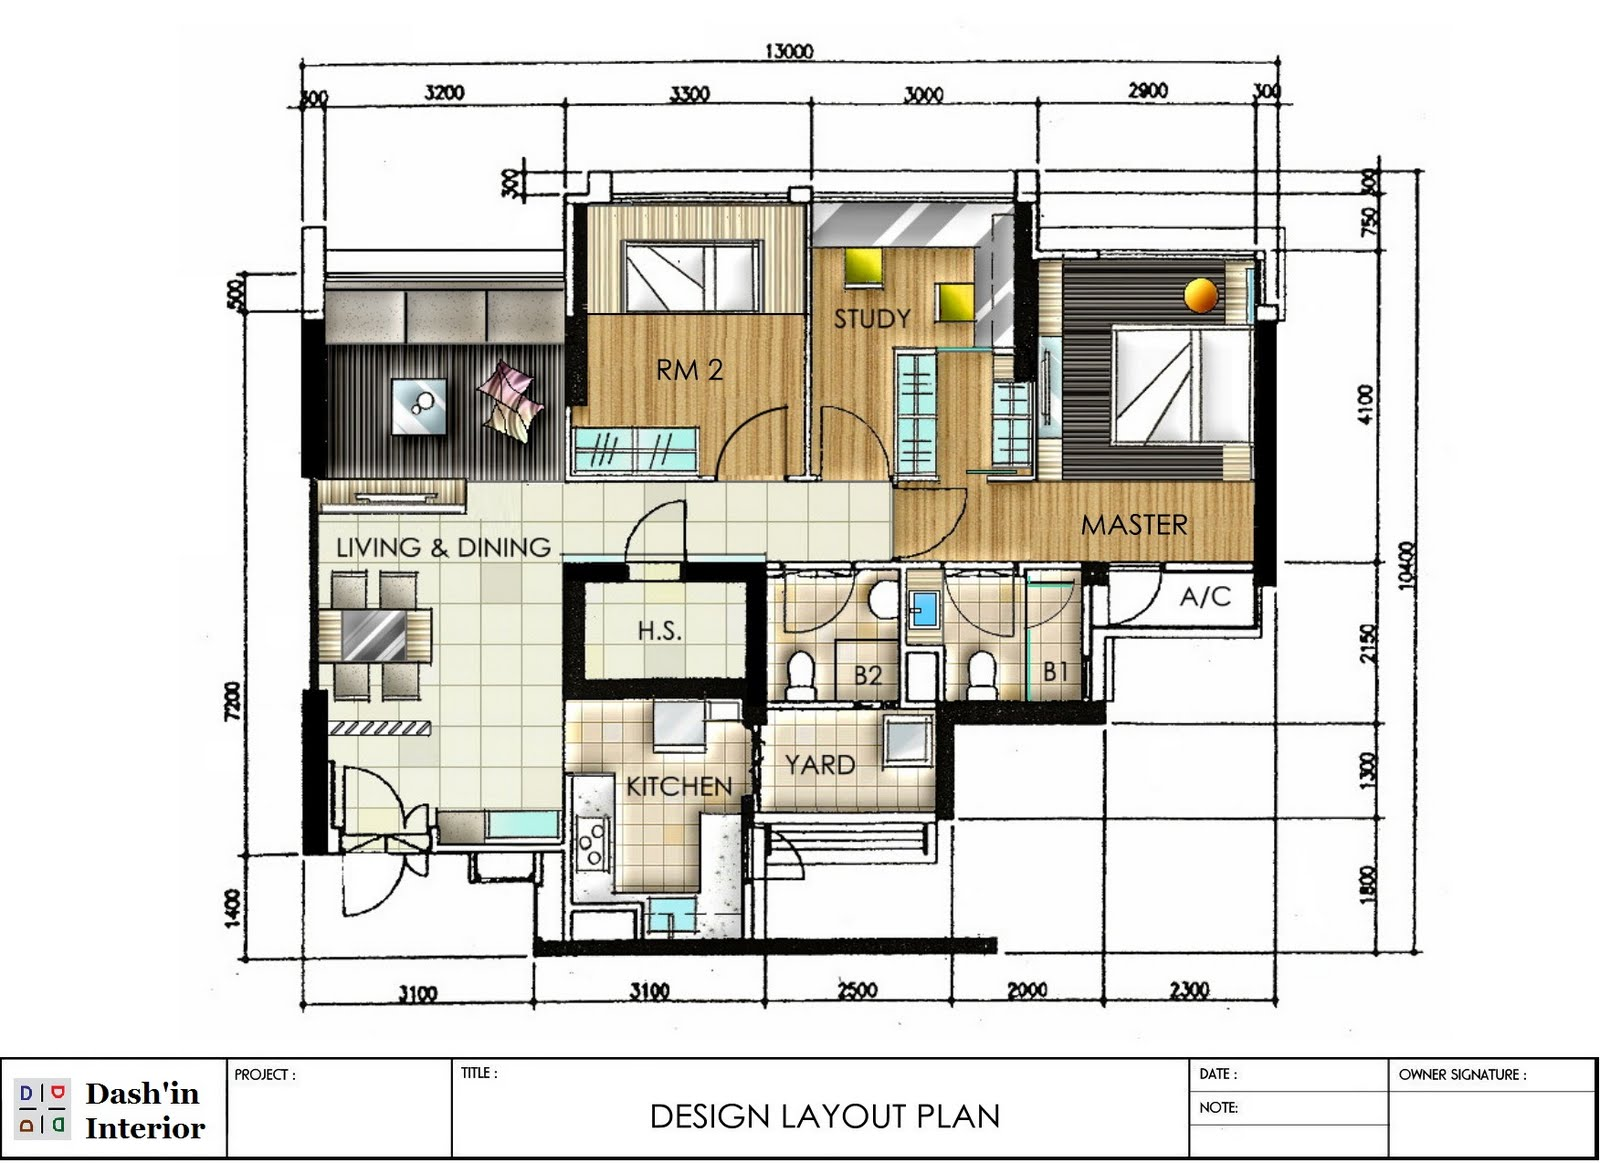 Dash 39 in interior hand drawn designs floor plan layout - Plan floor design ...